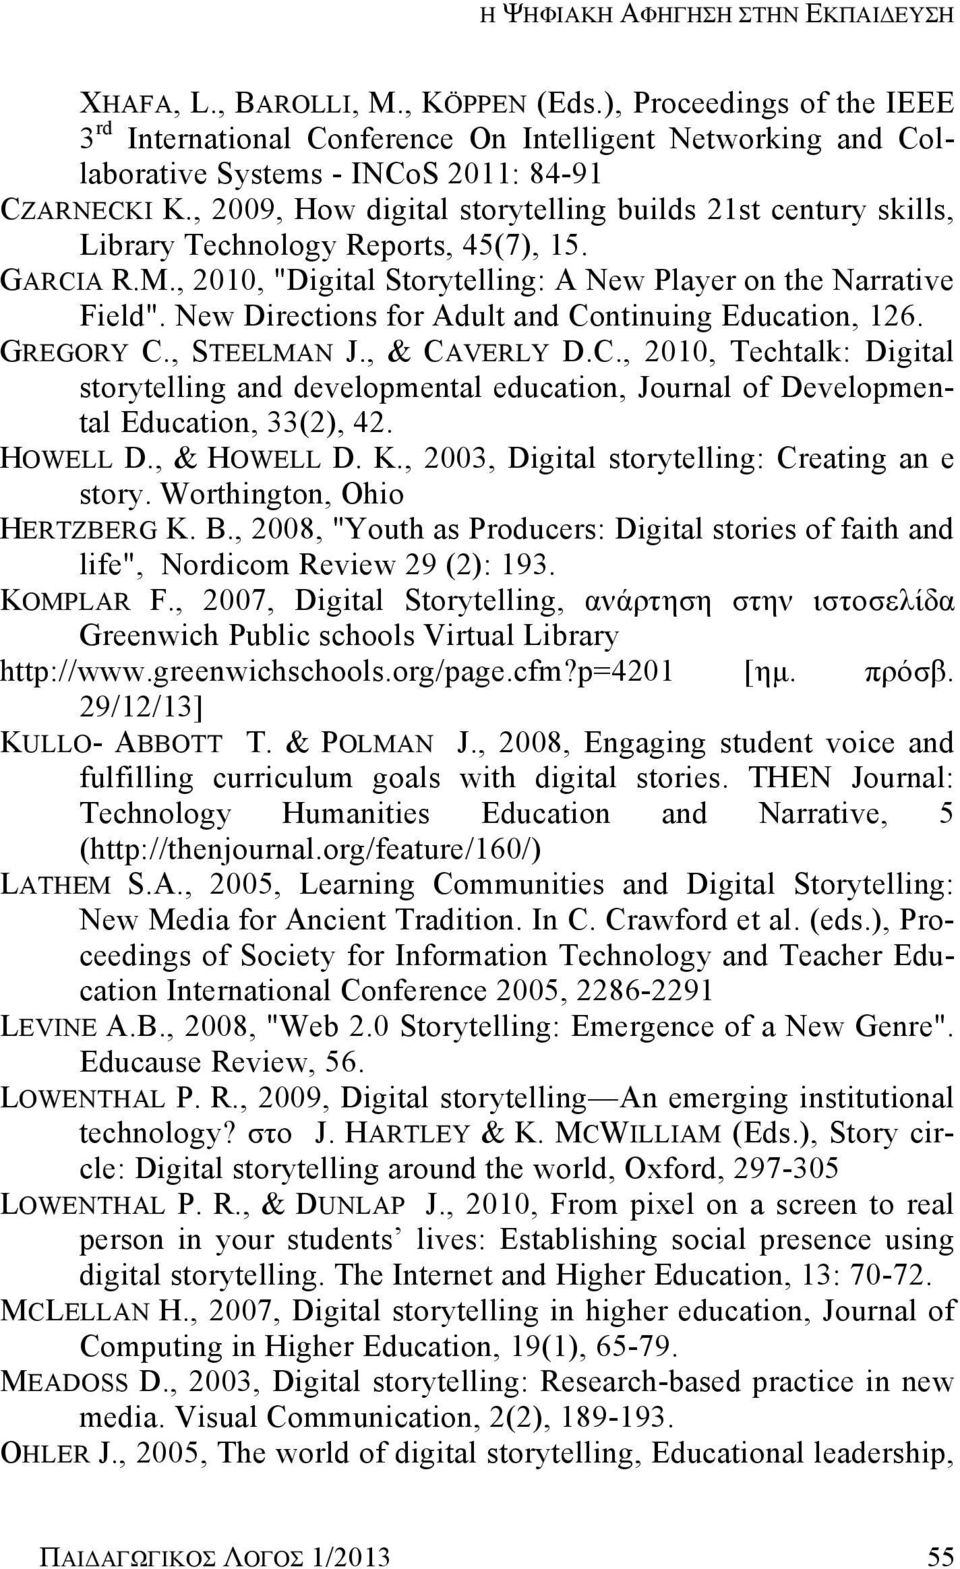 ", 2009, How digital storytelling builds 21st century skills, Library Technology Reports, 45(7), 15. GARCIA R.M., 2010, ""Digital Storytelling: A New Player on the Narrative Field""."